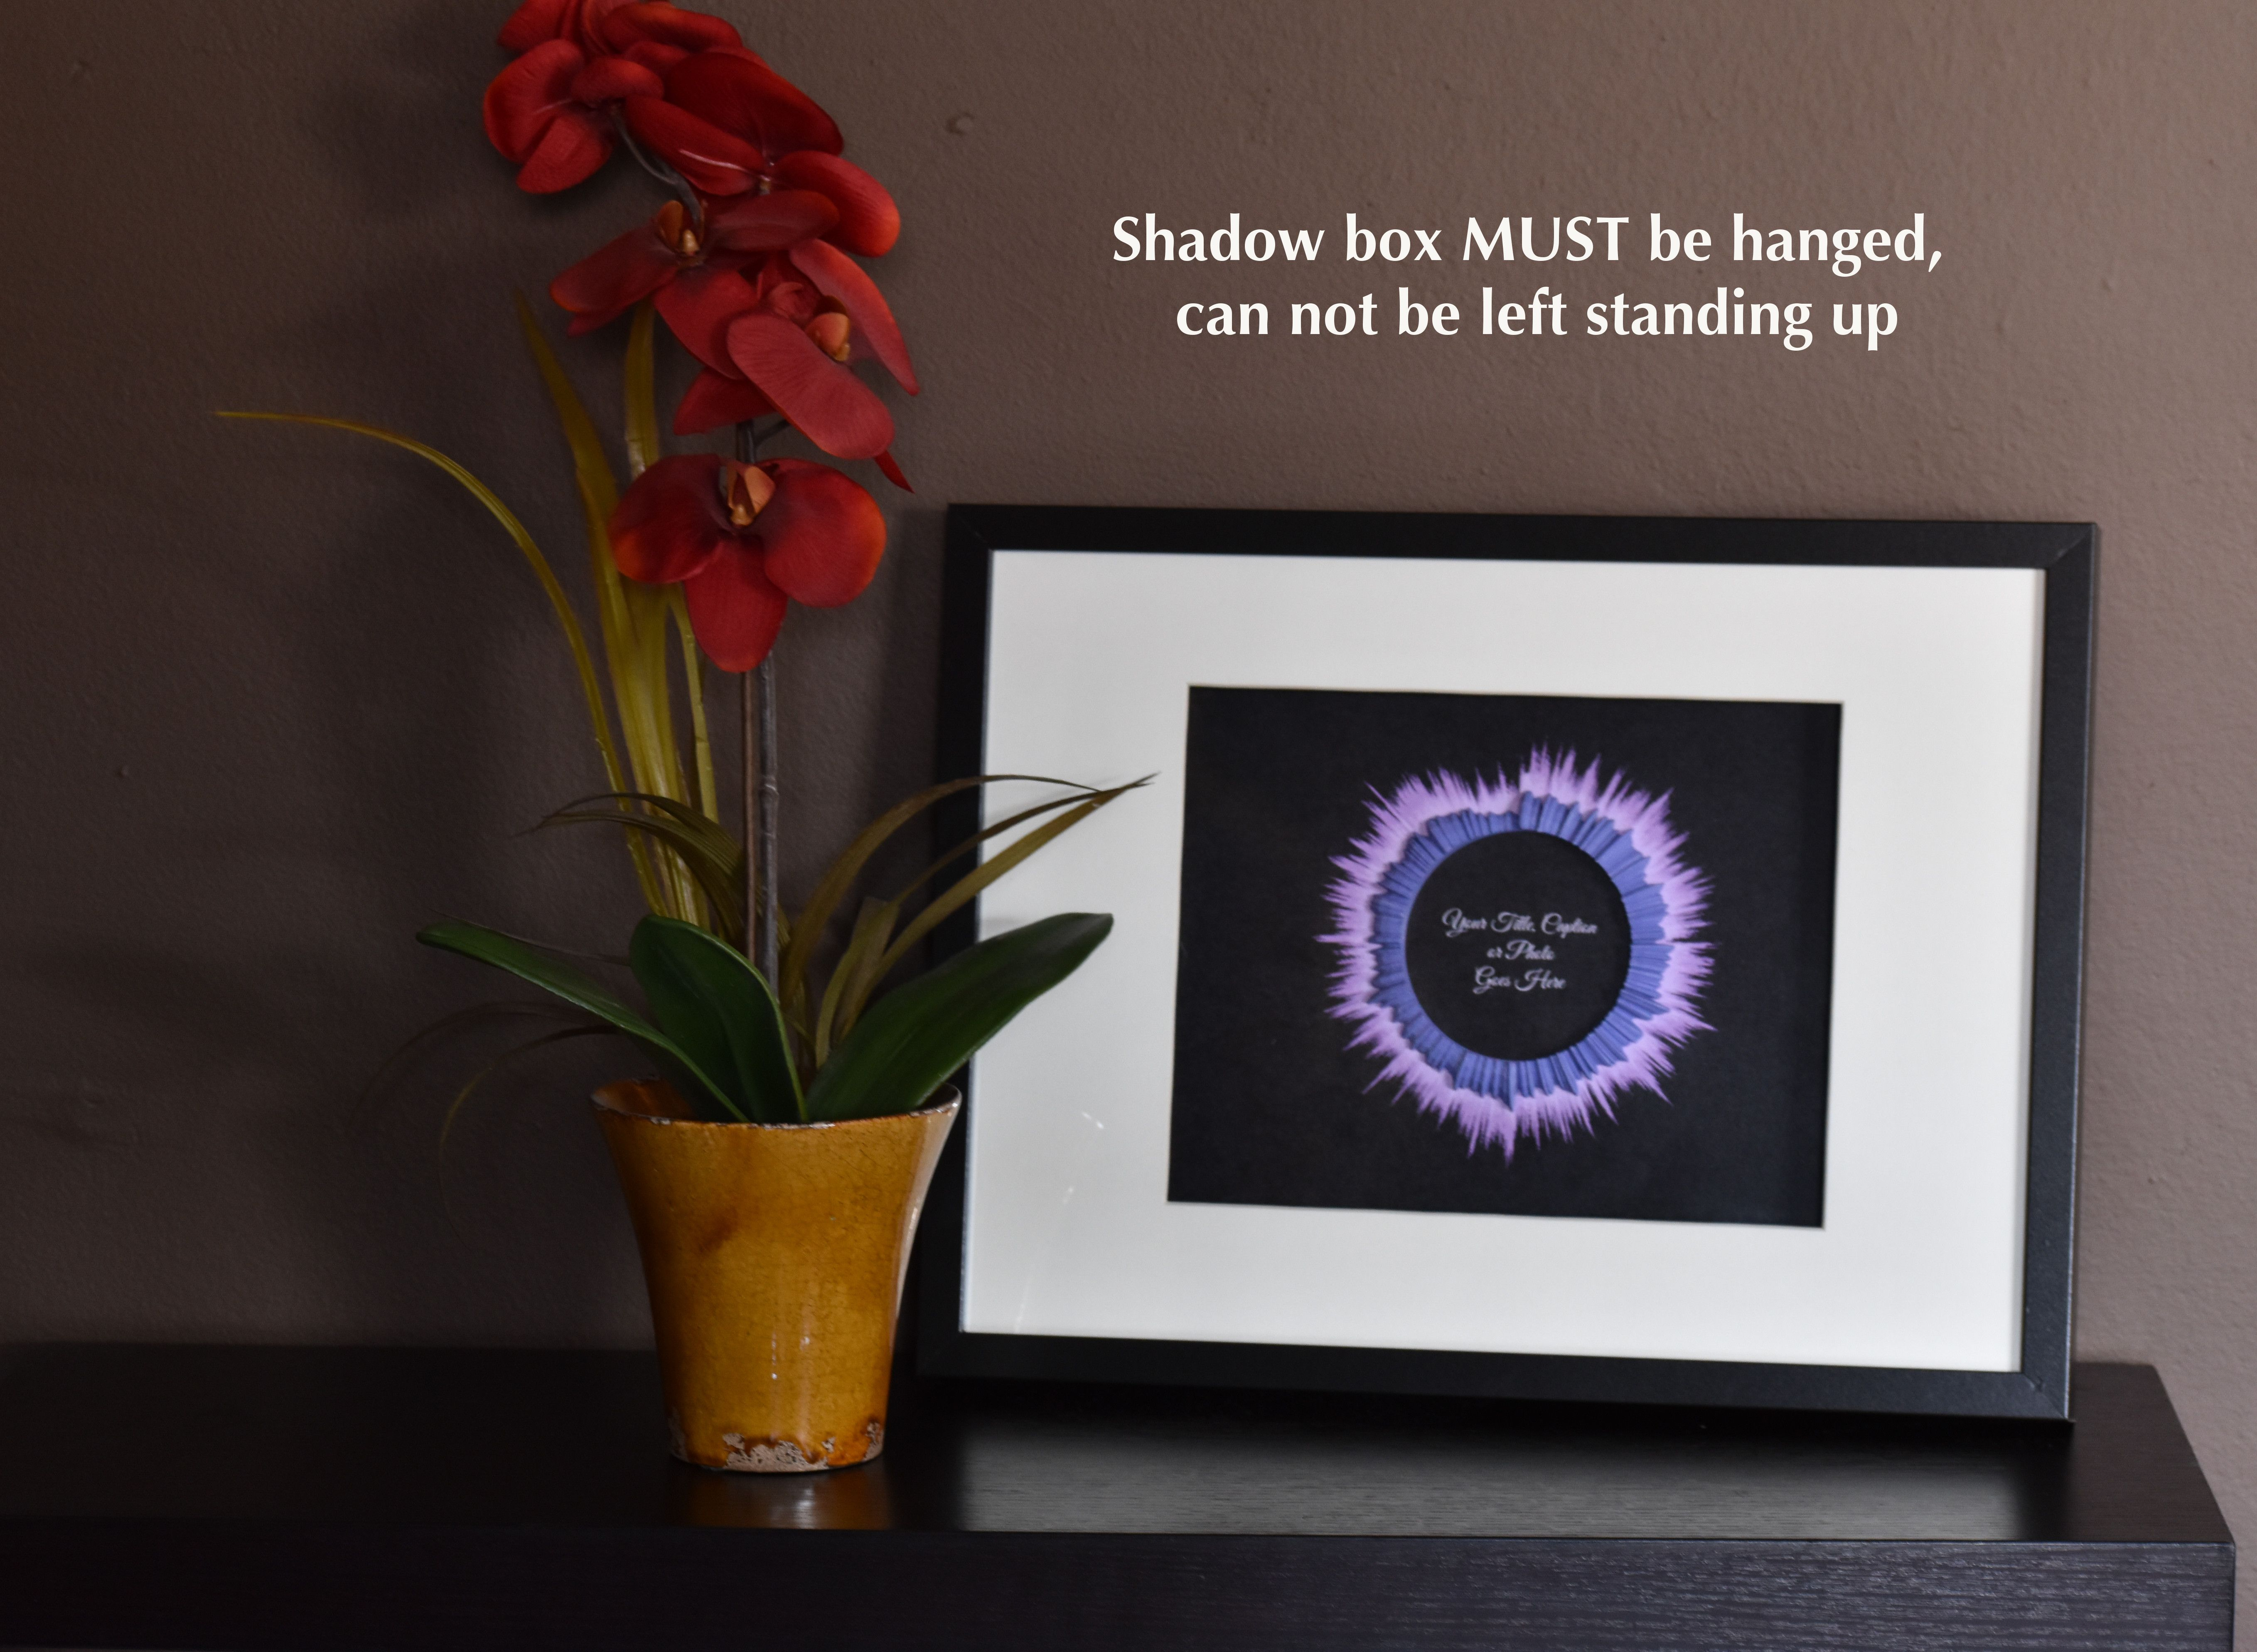 Buy a hand made song lyrics 3d radial sound wave art wedding song buy a hand made song lyrics 3d radial sound wave art wedding song display personalized anniversary gift made to order from htp concepts custommade jeuxipadfo Gallery